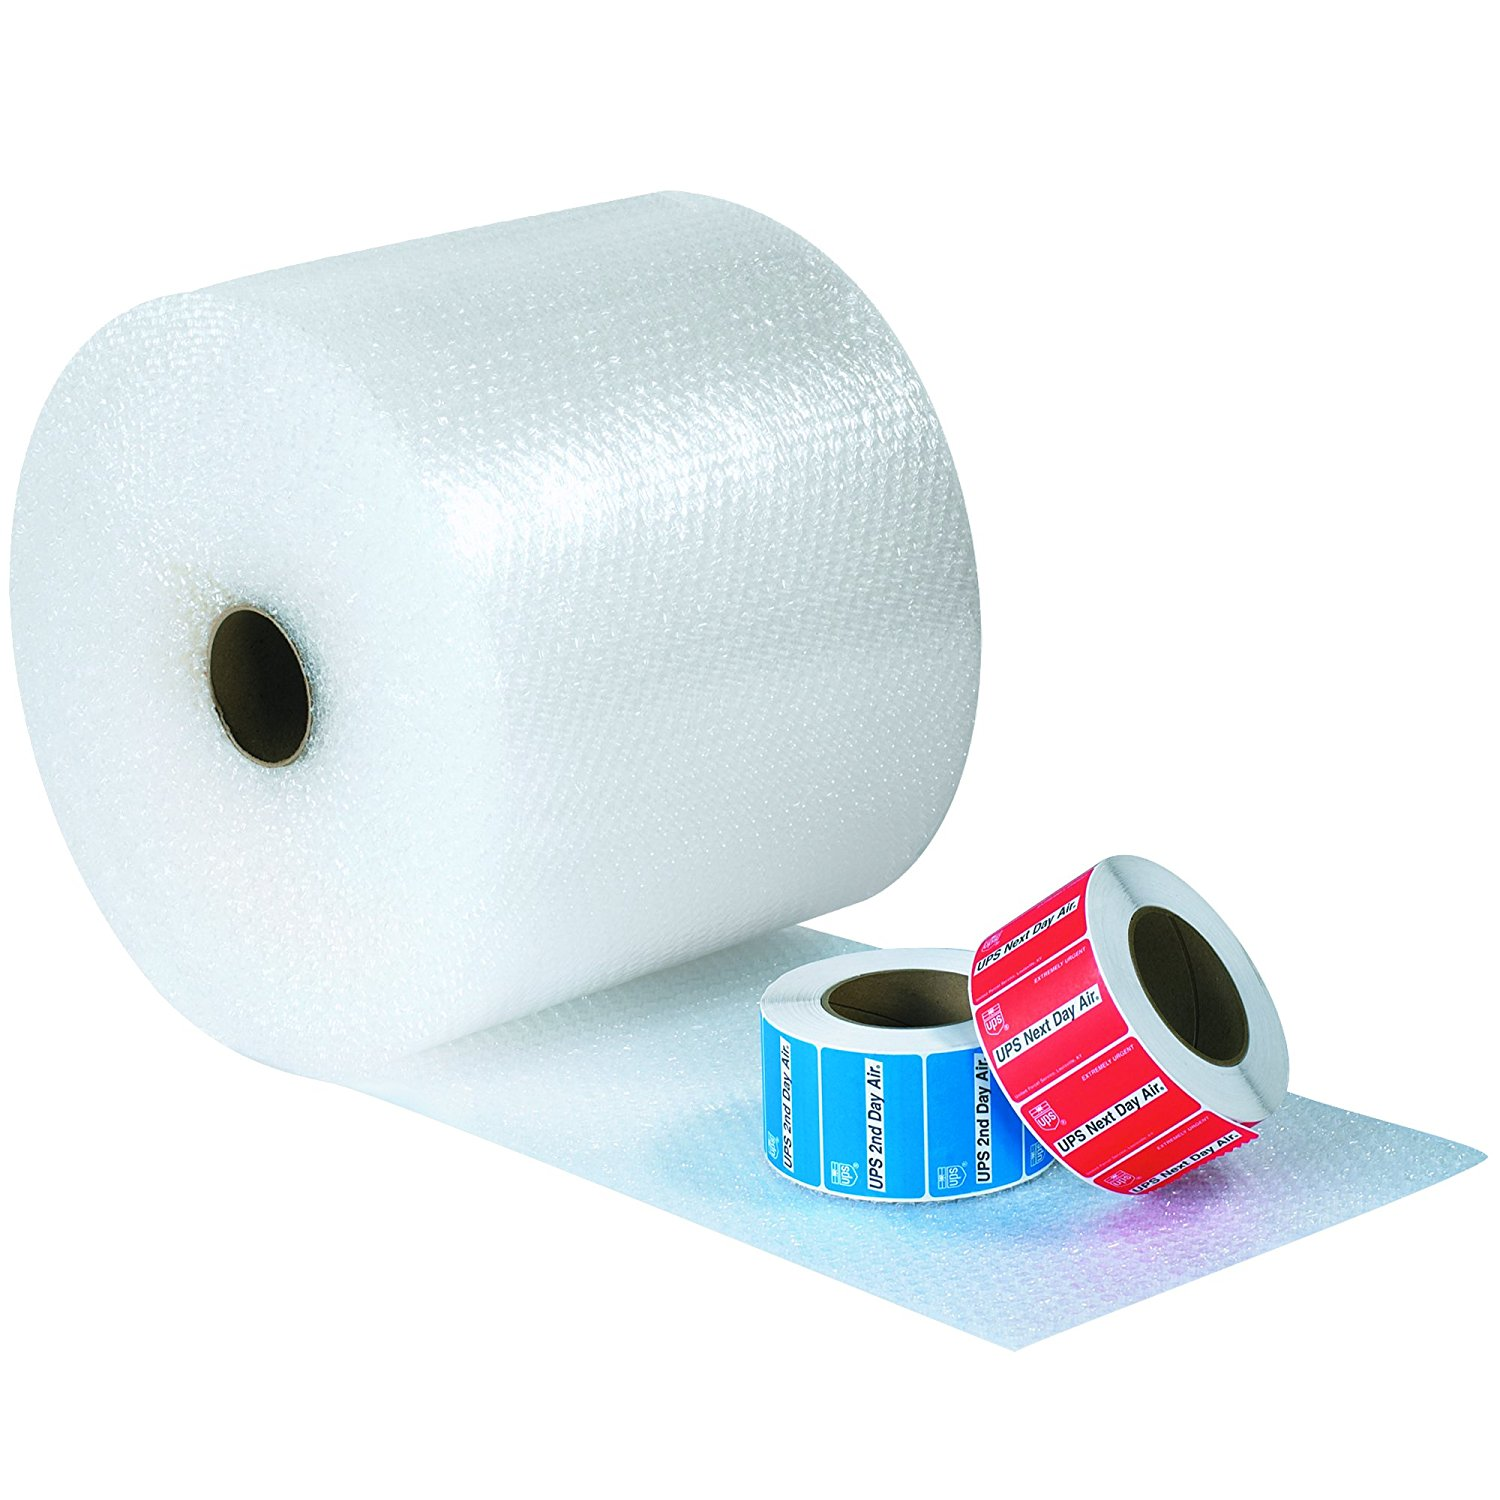 """Ship Now Supply SNBWUP516S12 Upsable Air Bubble Rolls, 5/16"""" x 12"""" x 188', (Four 12"""" Rolls), 12"""" width, 0.313"""" Height, Clear (Pack of 4)"""